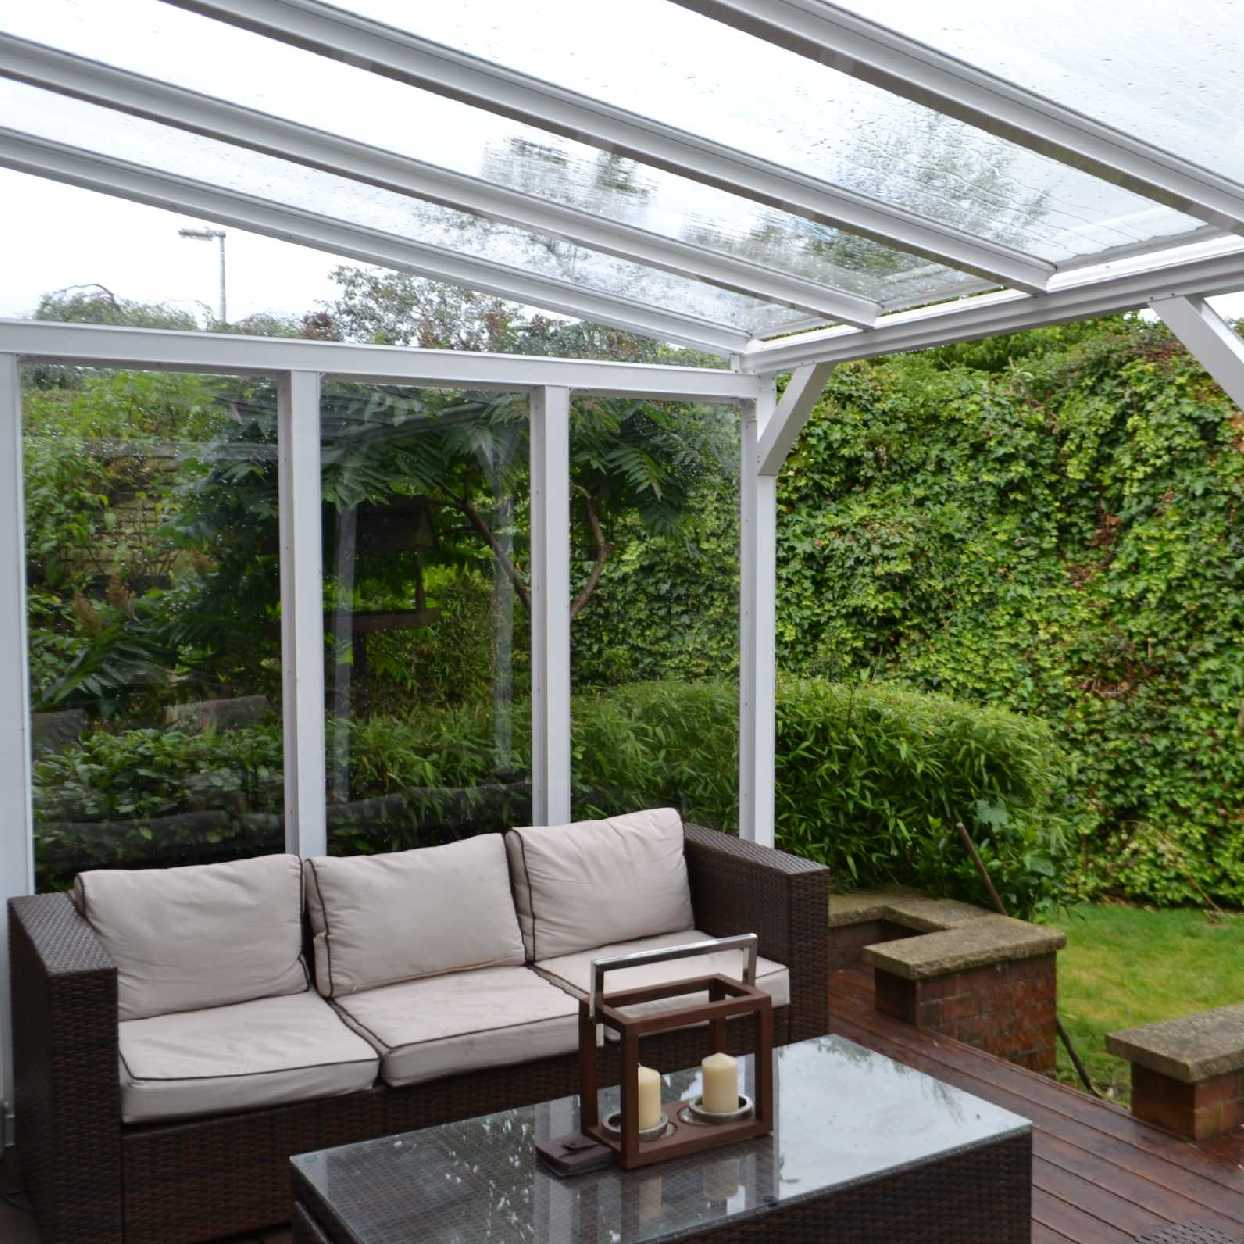 Great selection of Omega Smart Lean-To Canopy with 16mm Polycarbonate Glazing - 11.6m (W) x 2.5m (P), (5) Supporting Posts